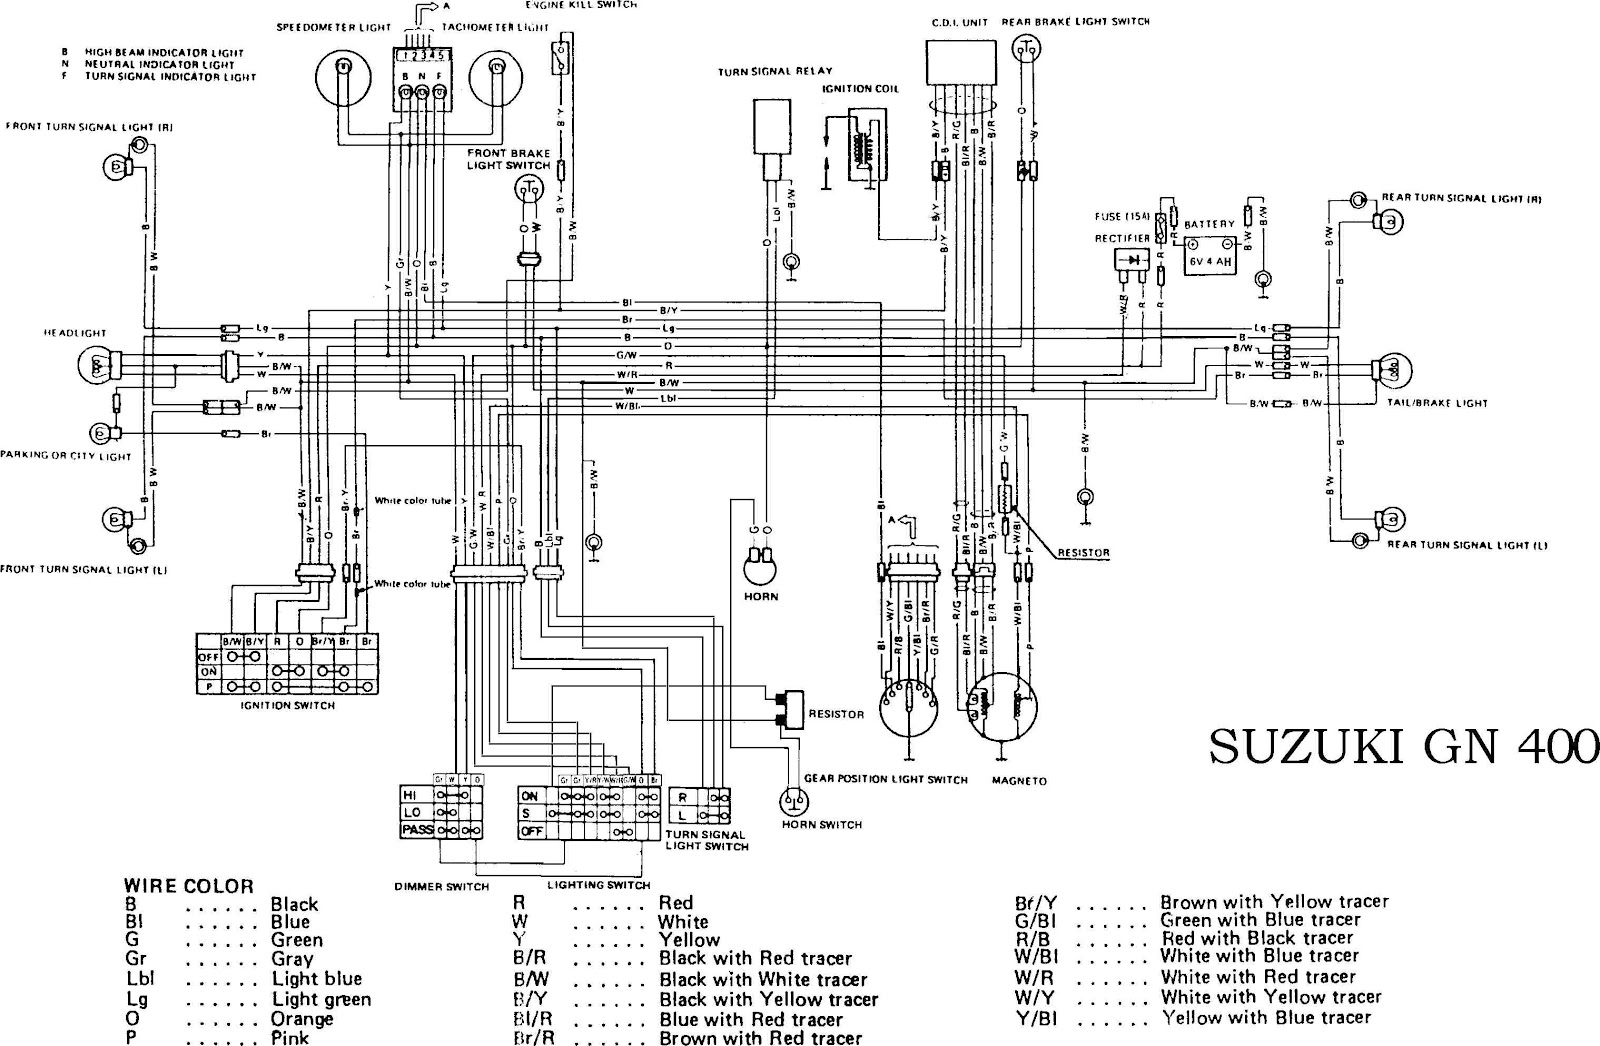 suzuki motorcycle 6 volt wiring diagram suzuki gn400 motorcycle complete electrical wiring diagram ...